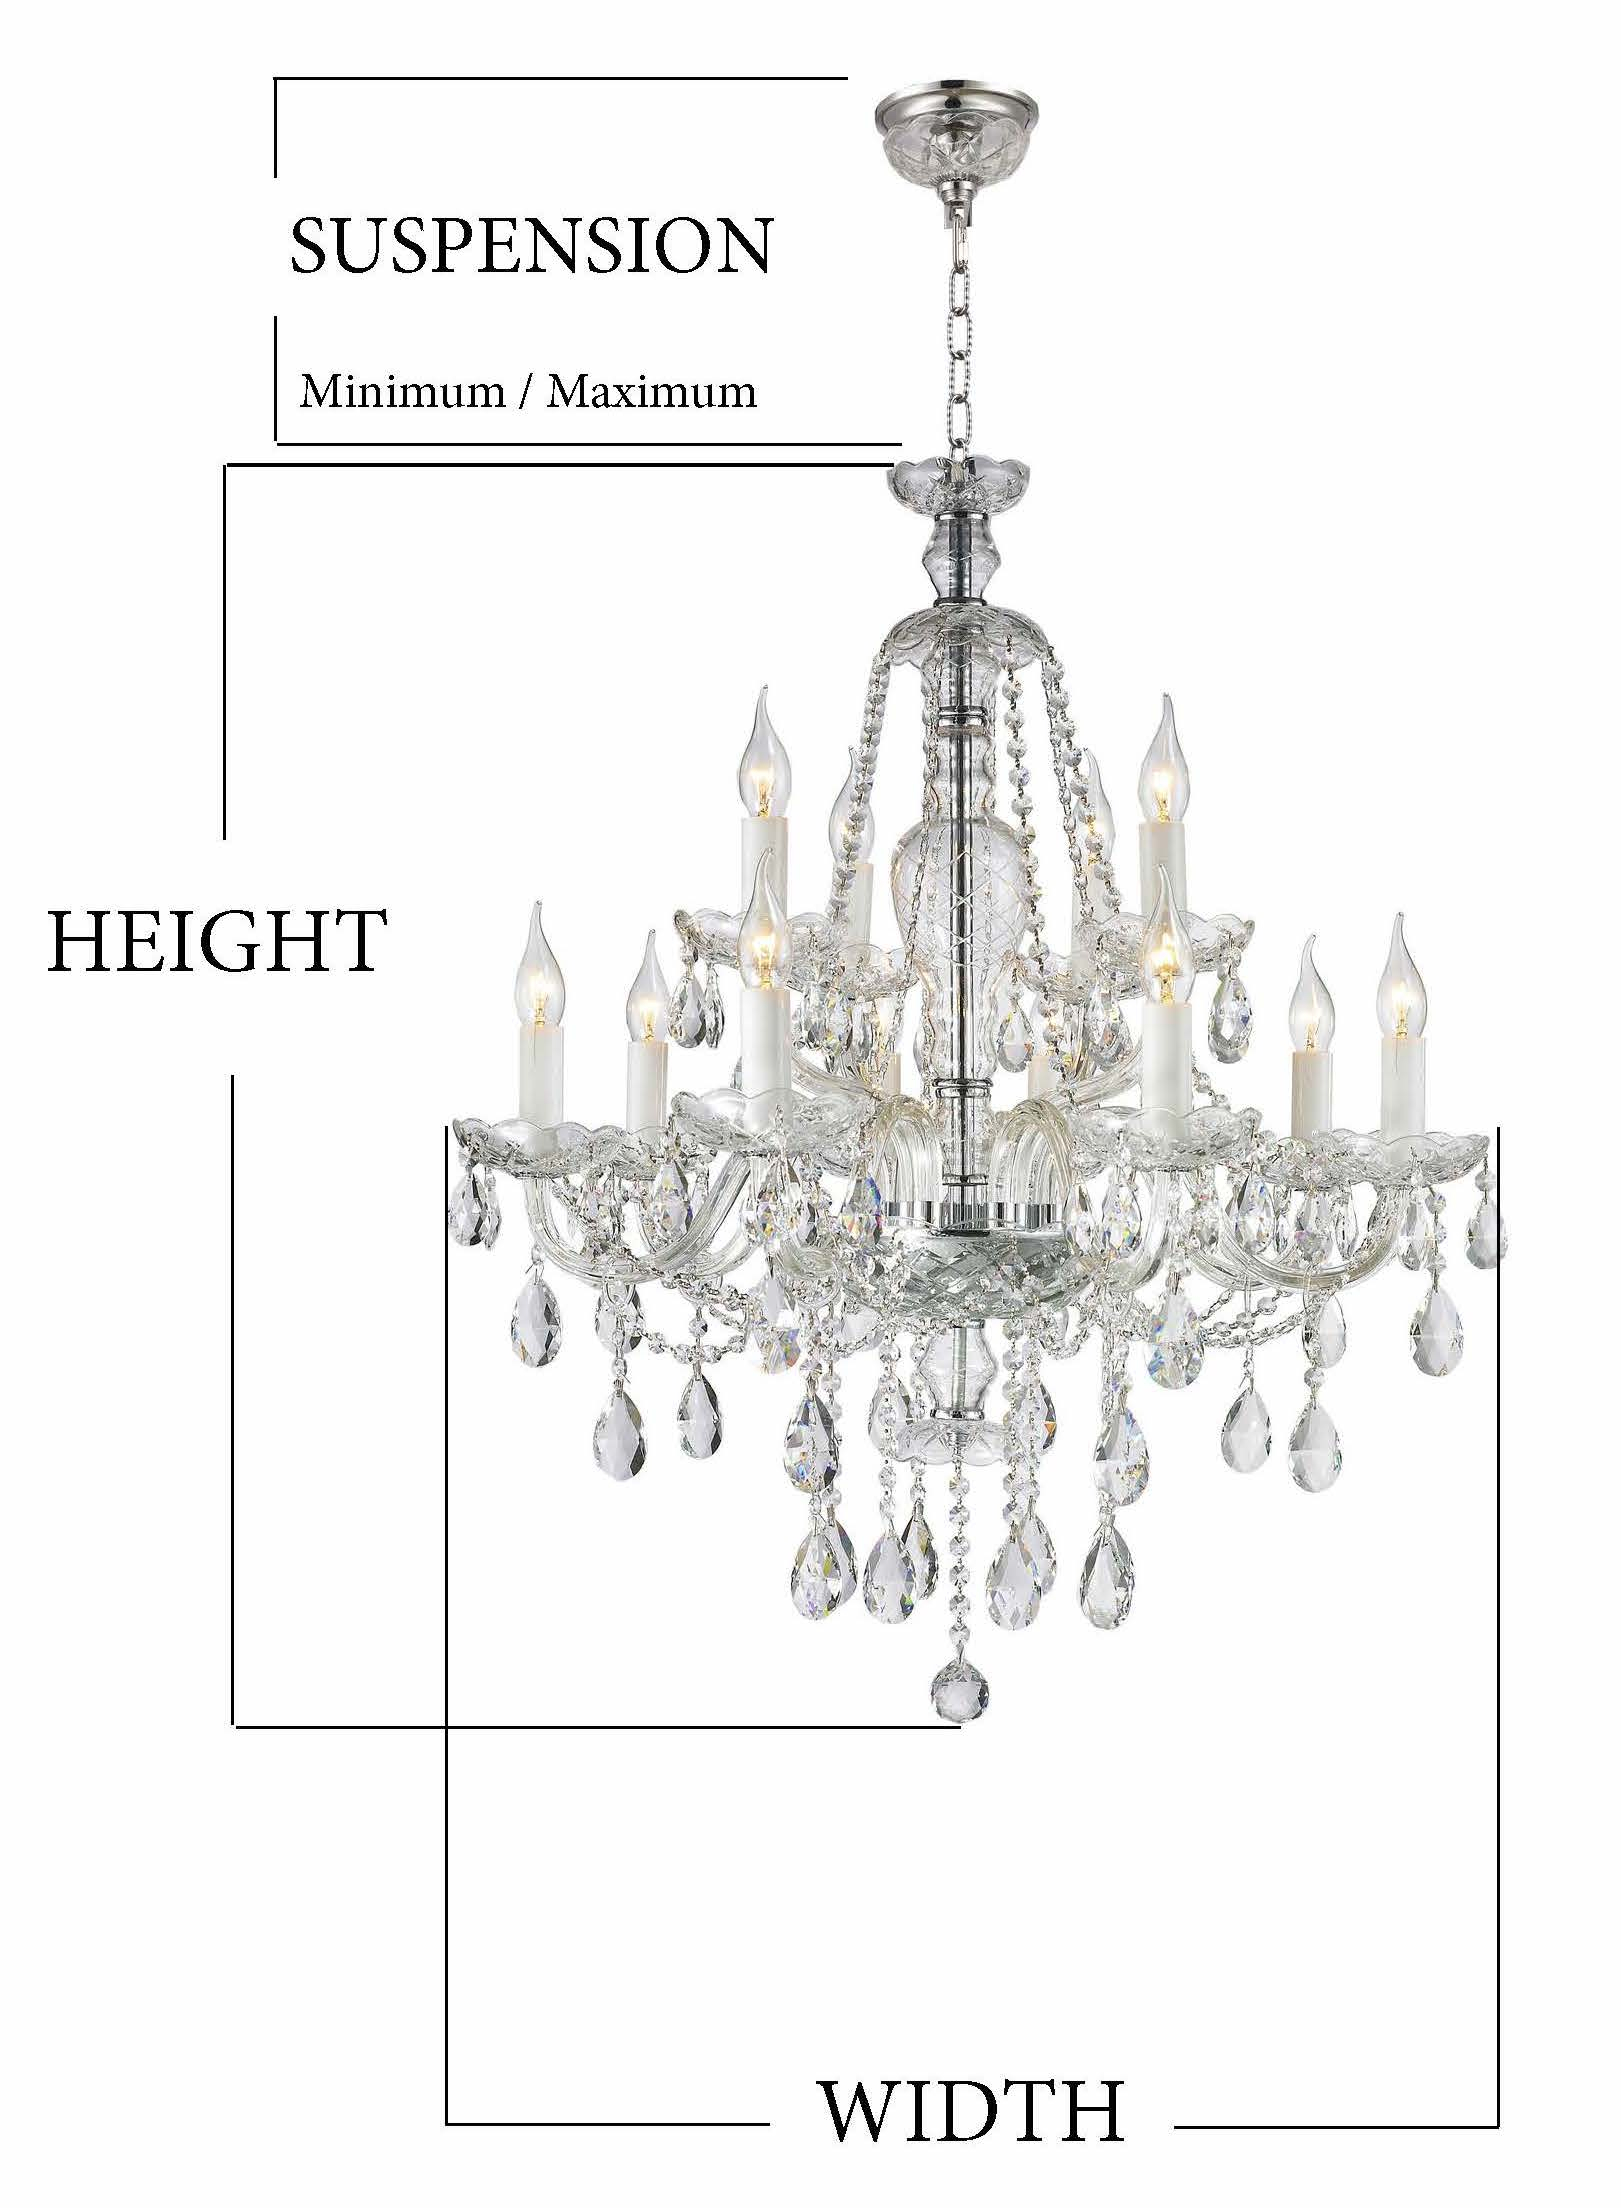 Chandelier Size Guide - Suspension